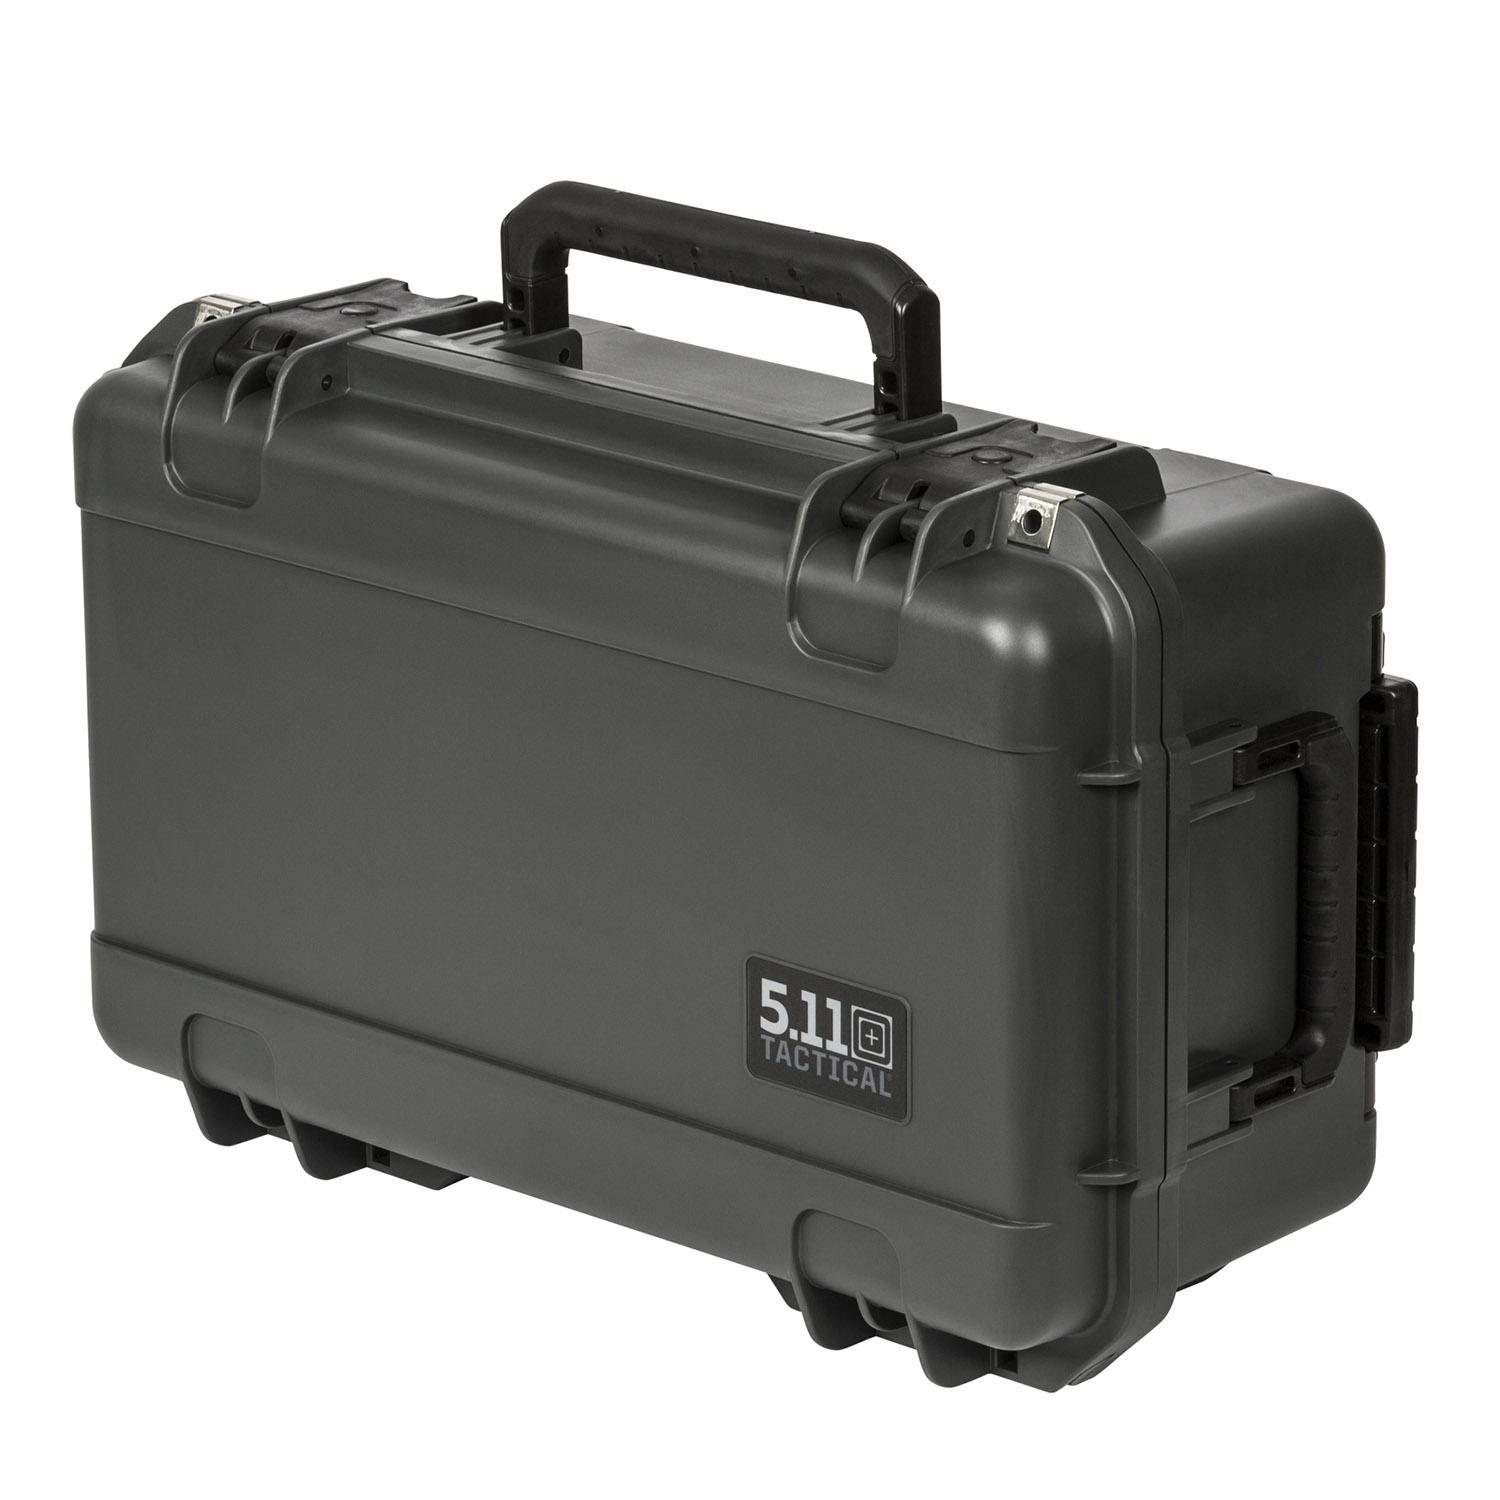 5.11 Tactical Hard Case 1750